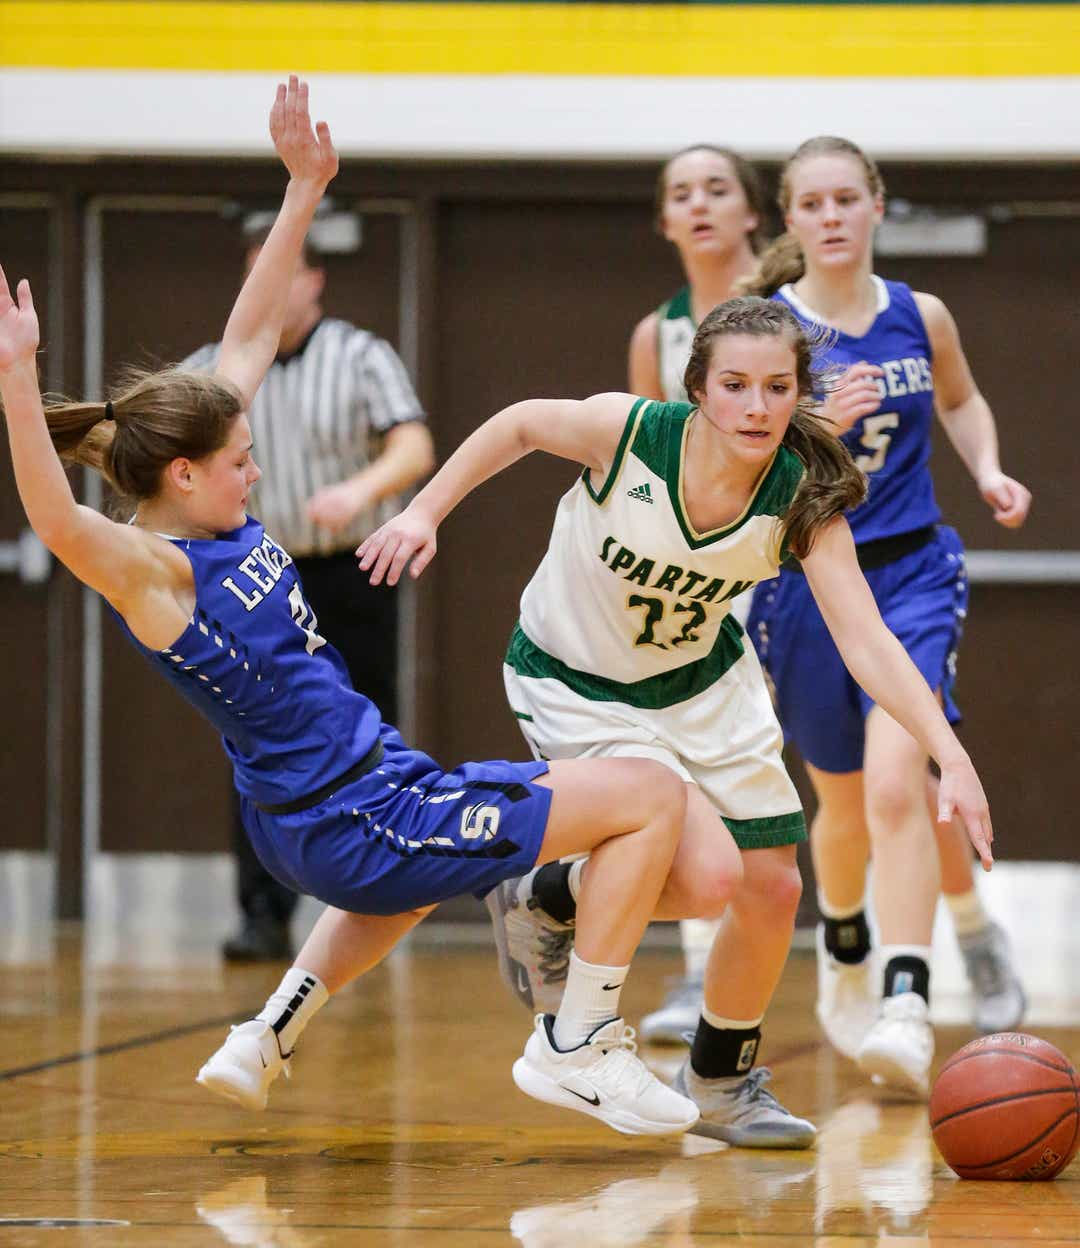 f3ee291d5ee St. Mary's Springs Academy girls basketball's Jennifer Chatterton gets  called for a foul while defending against Laconia High School's Haley  Rens Tuesday, ...